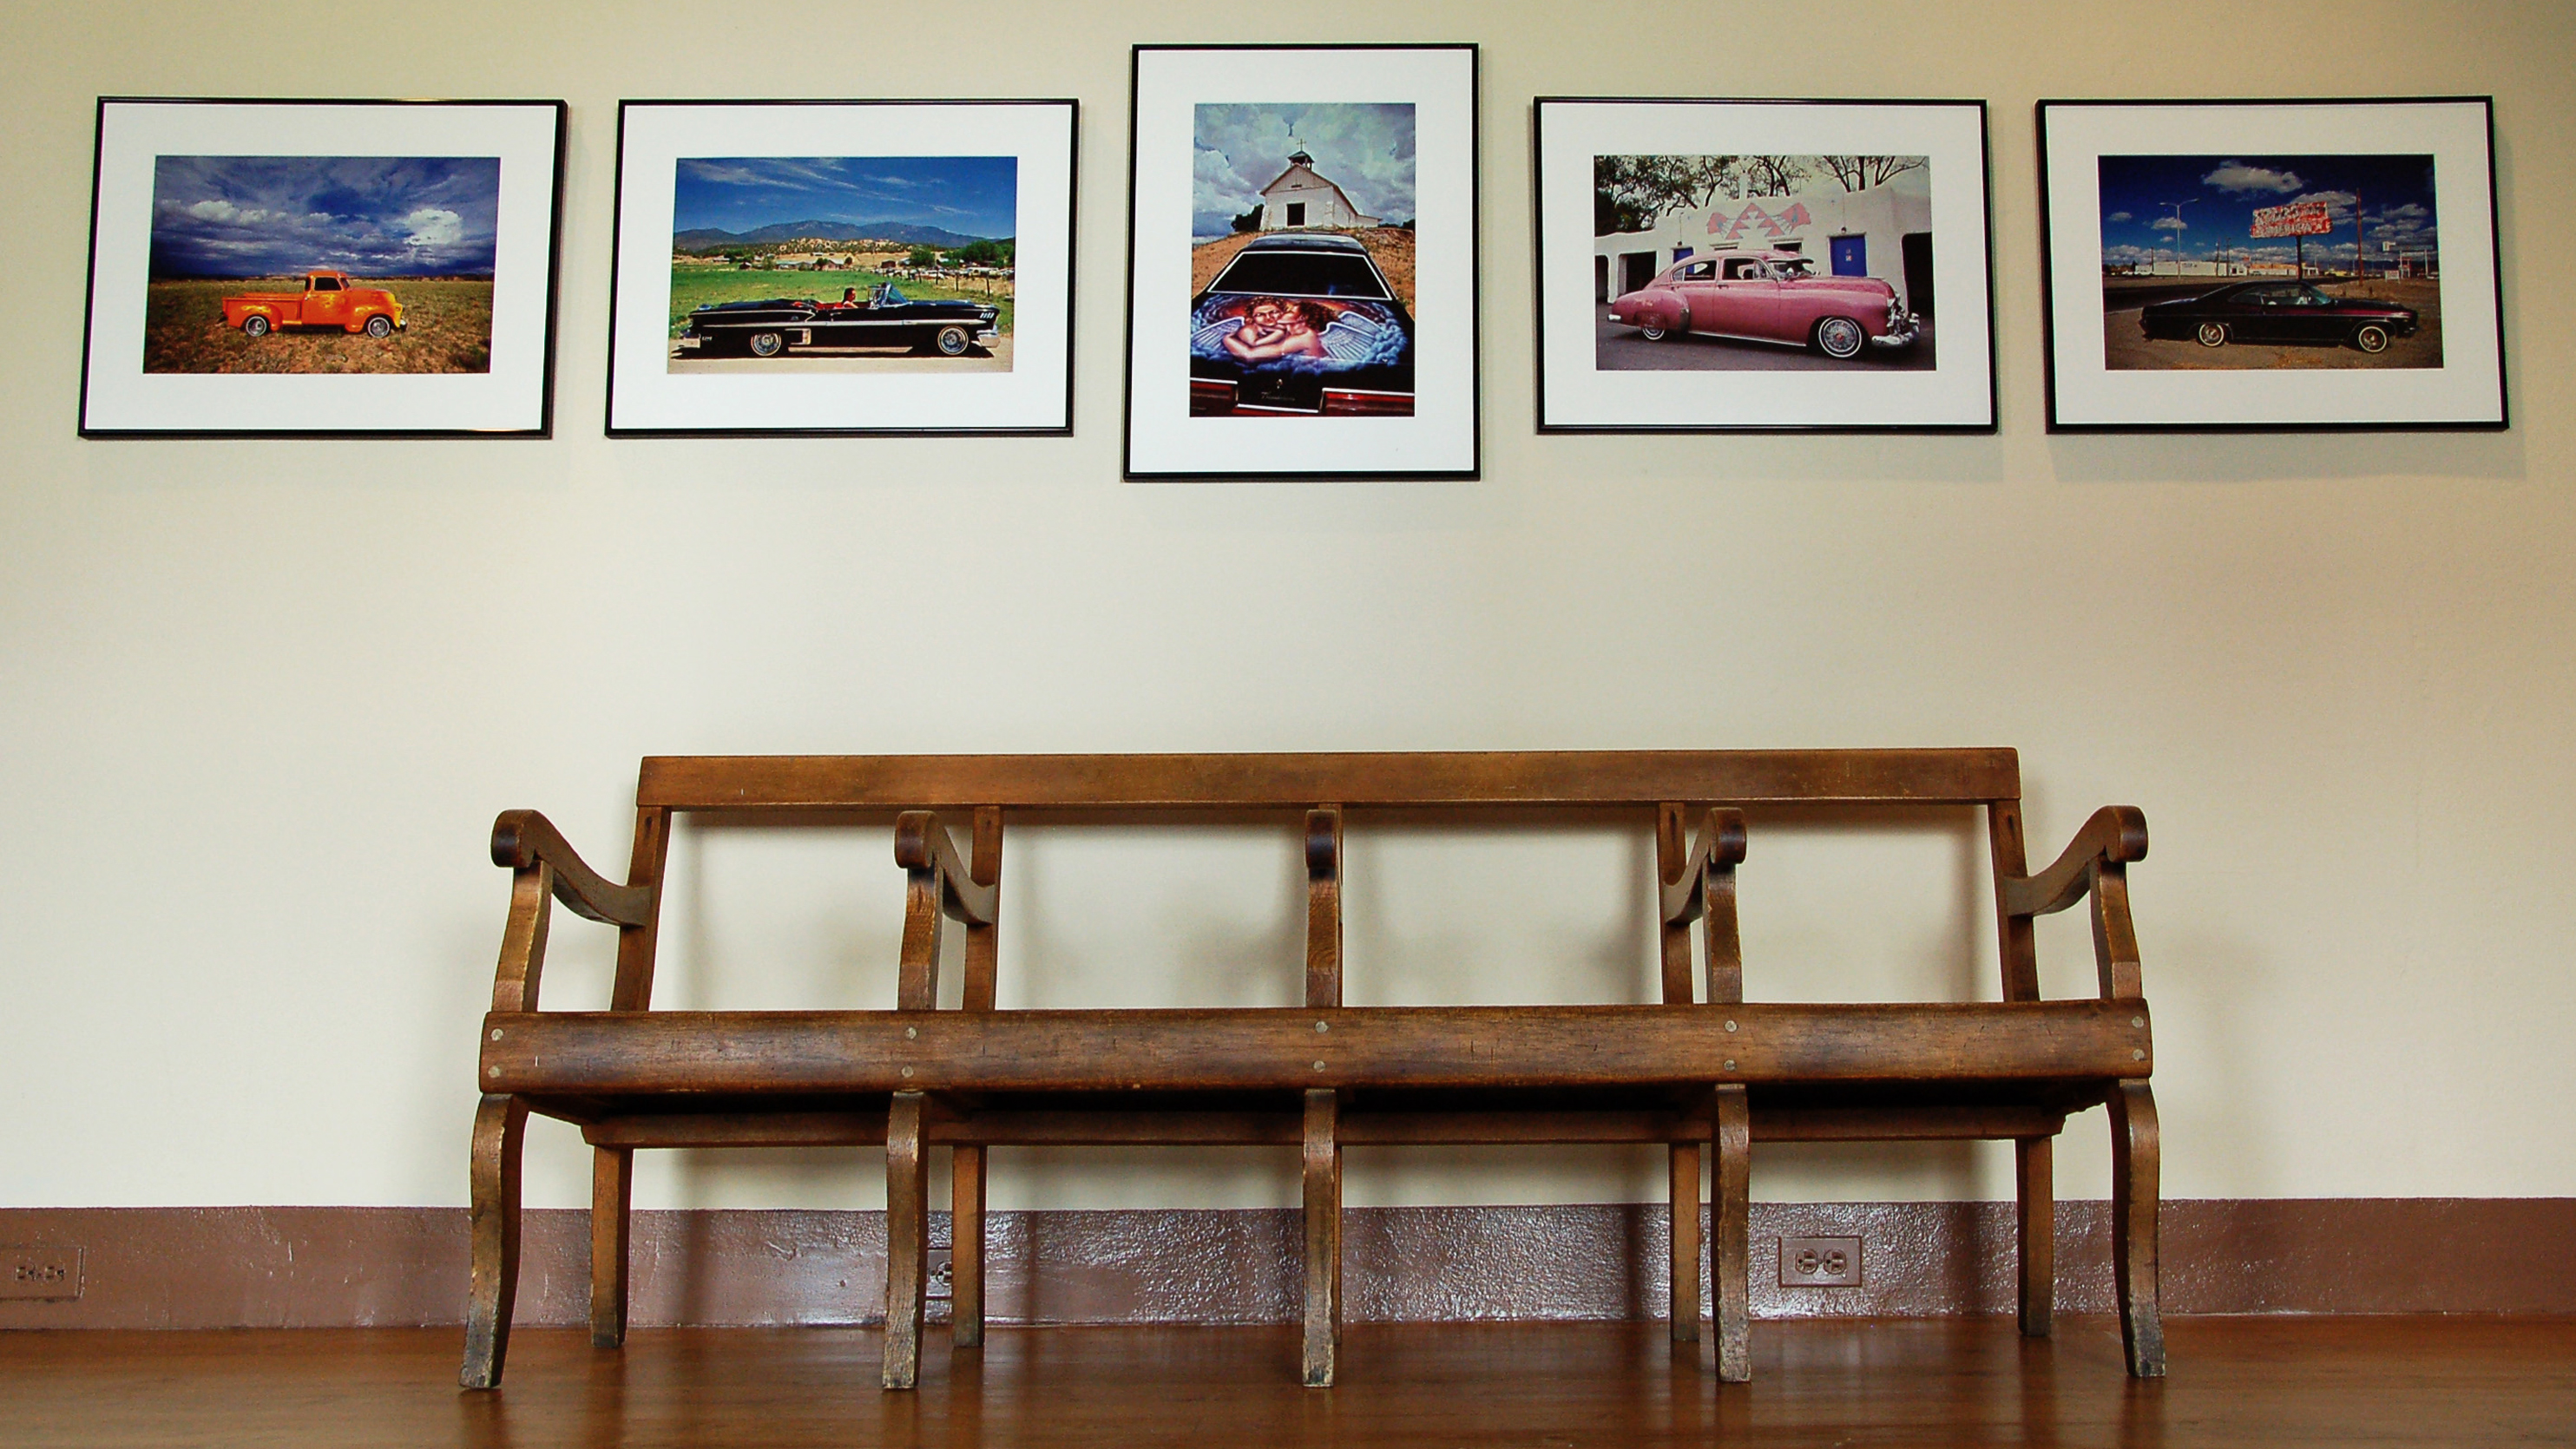 Wooden bench in the Palace of the Governors. Photo by Hannah Abelbeck